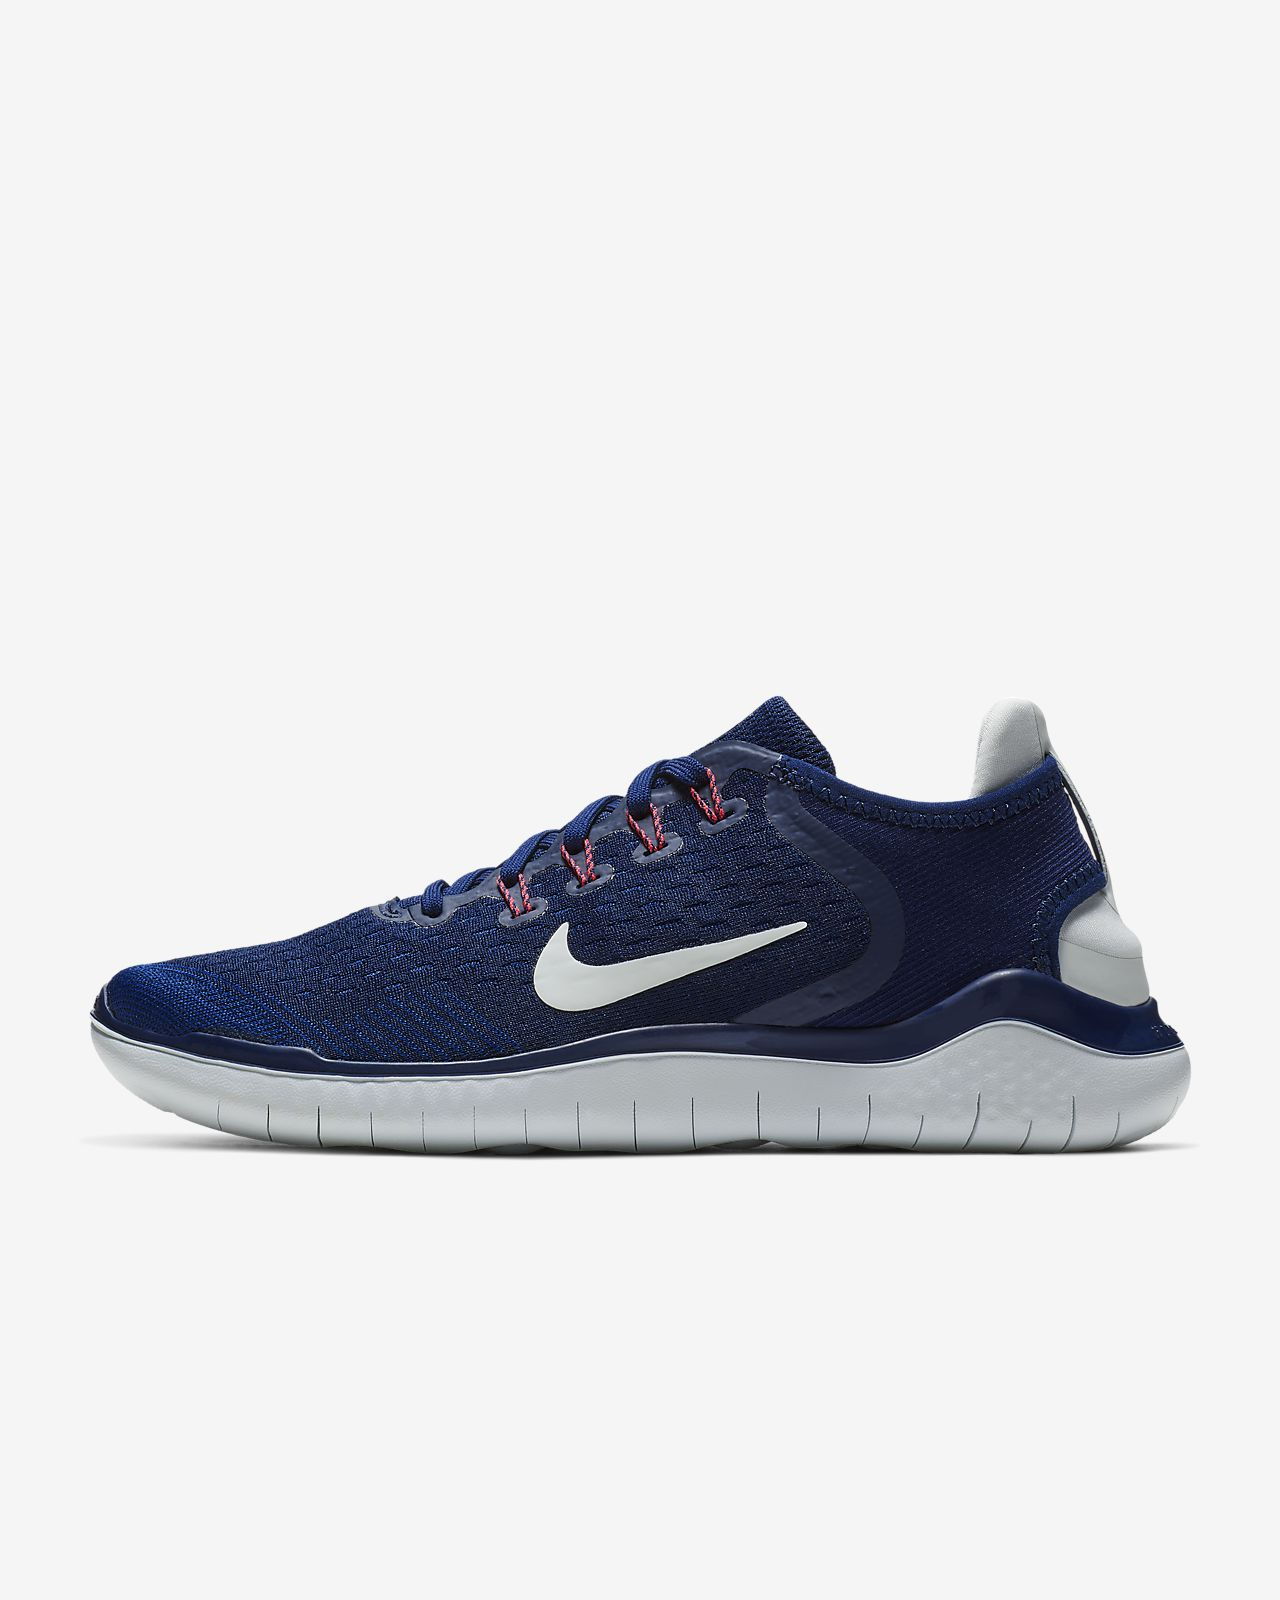 best loved 3eb66 63297 ... Nike Free RN 2018 Women s Running Shoe